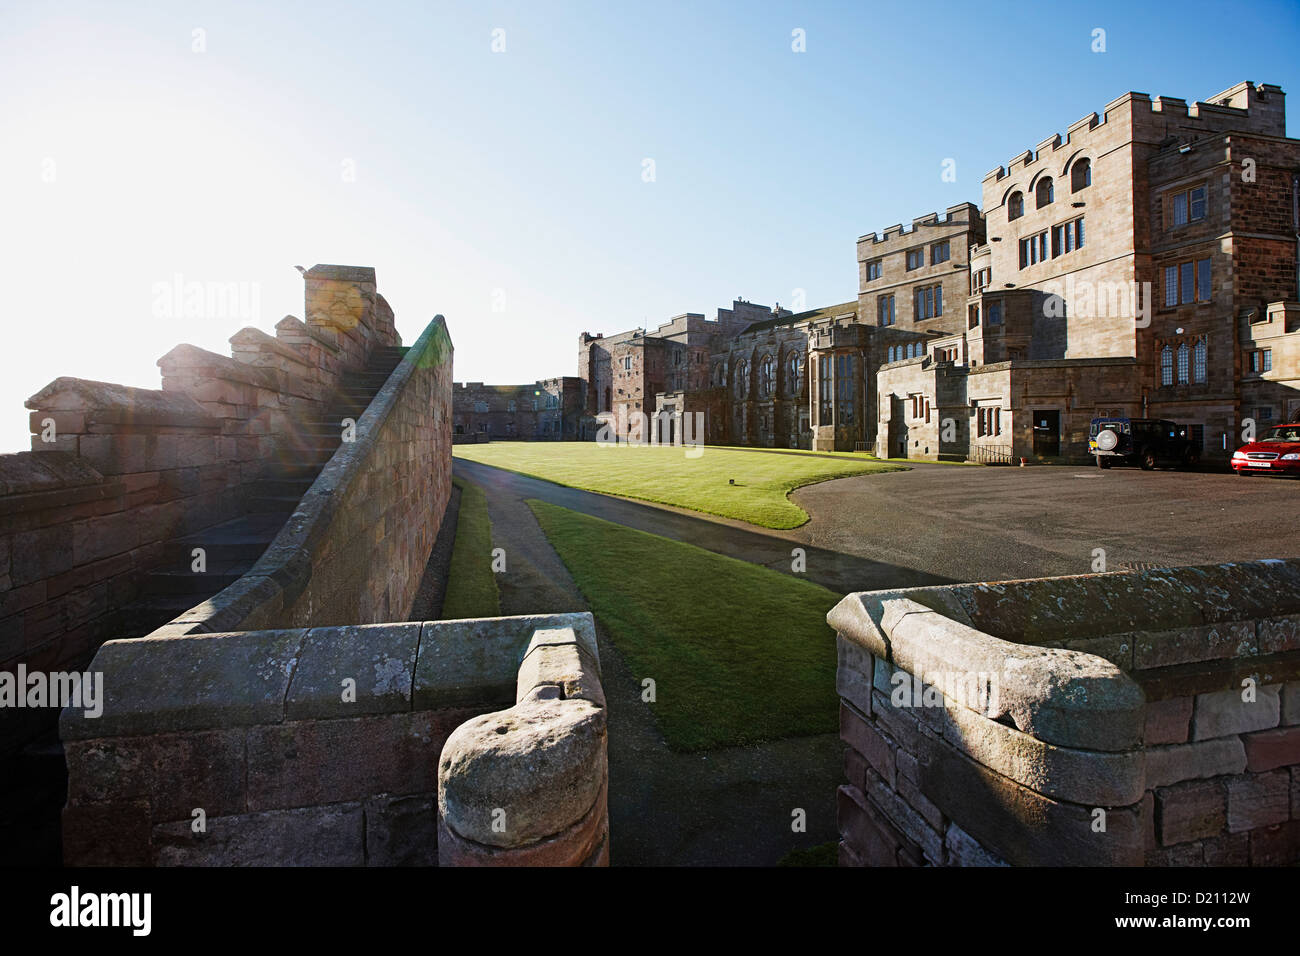 Lawn and driveway in front of Bamburgh Castle, Bamburgh, Northumberland, England, Great Britain, Europe - Stock Image